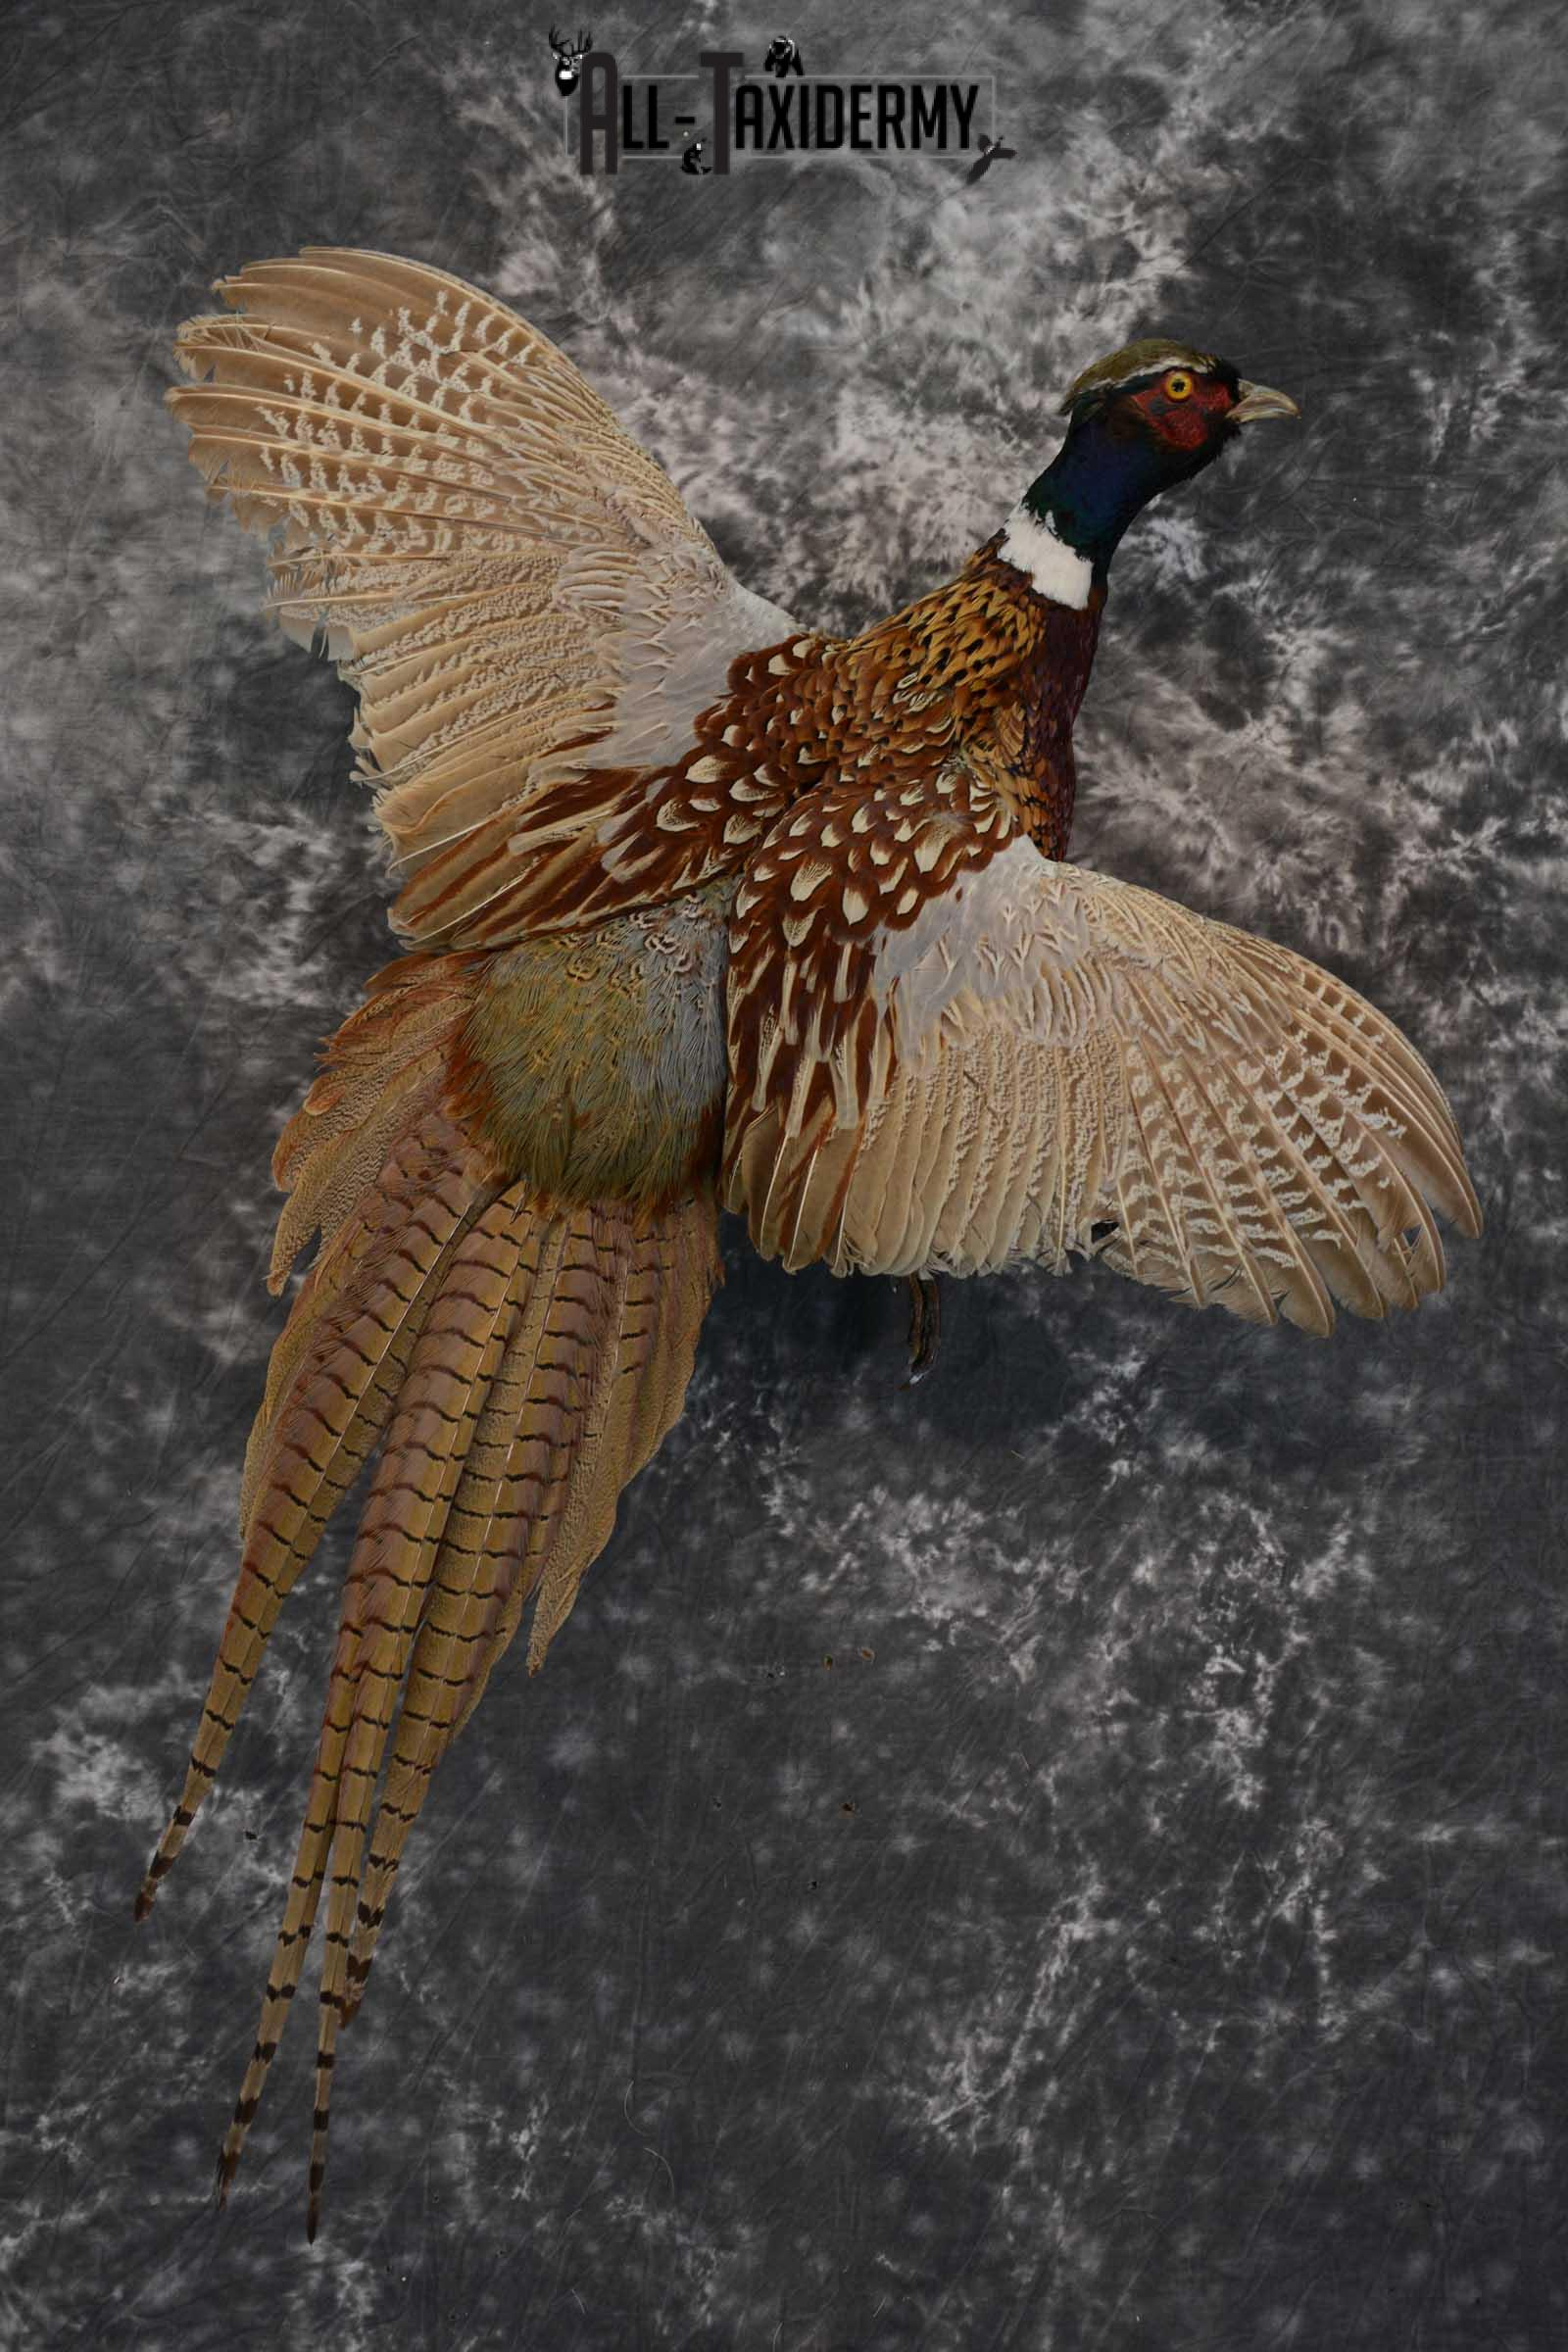 Ring Neck Pheasant taxidermy bird mount for sale SKU 1639